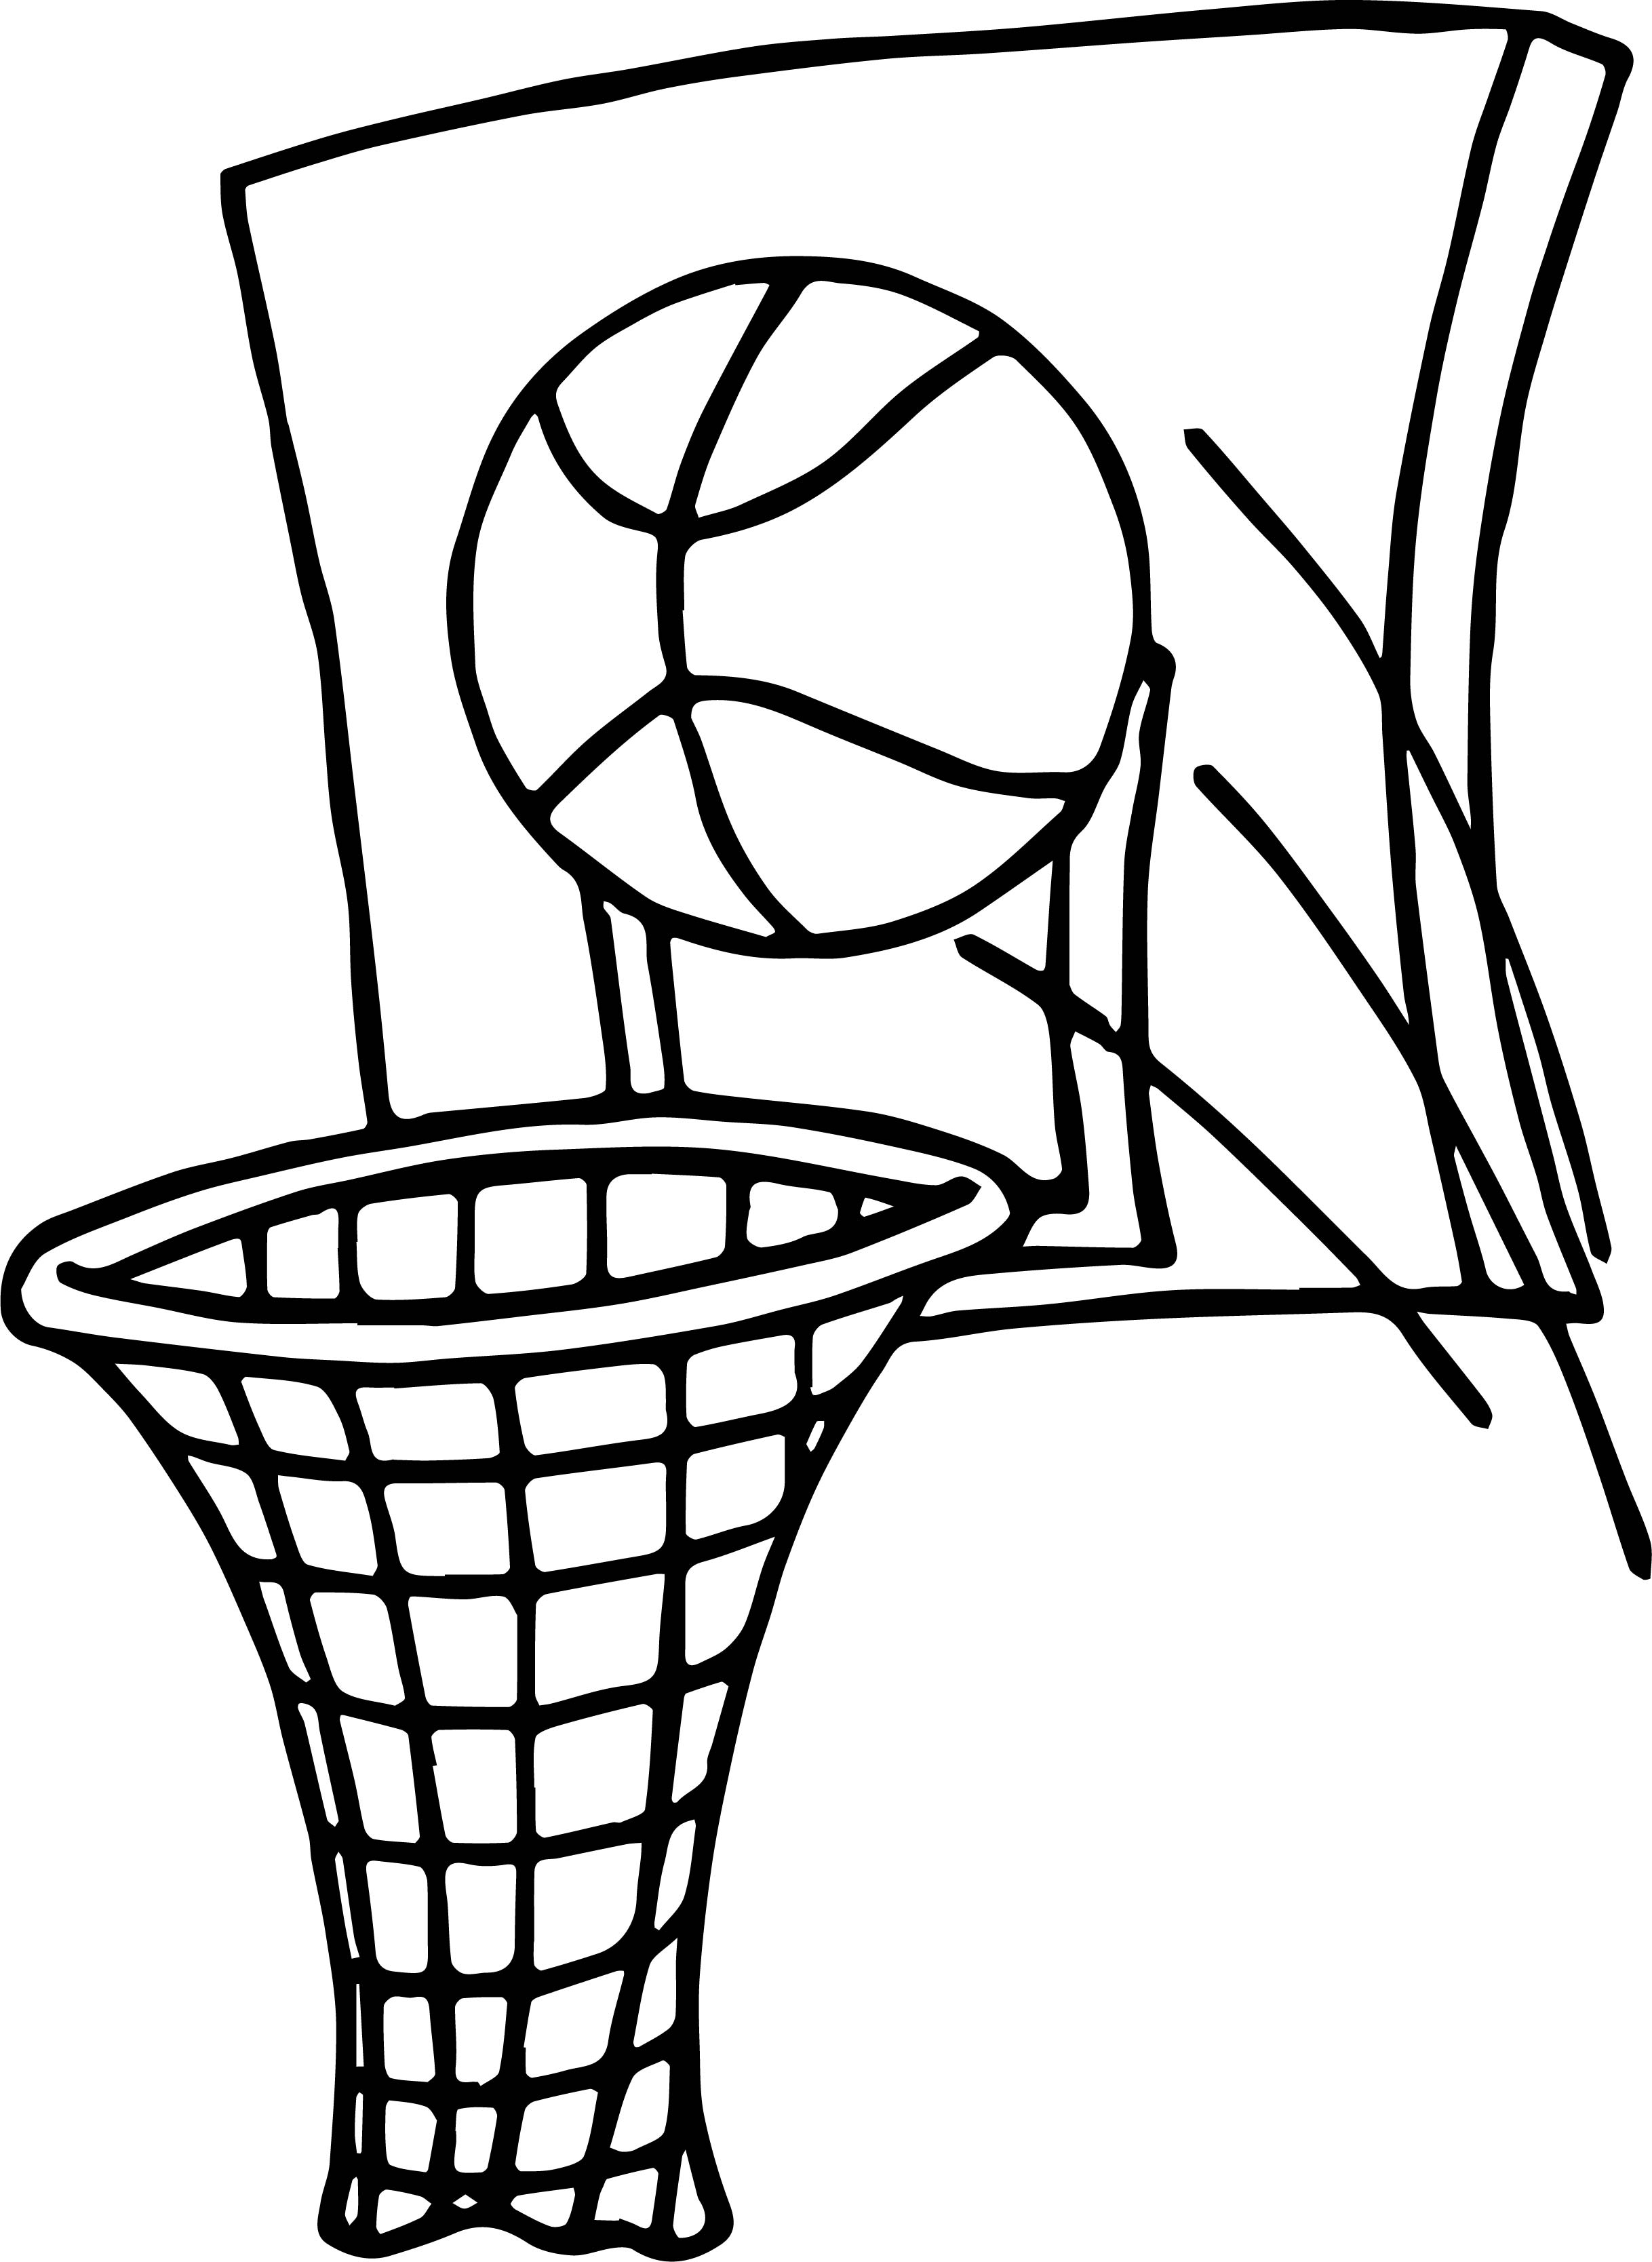 Simple Basketball Coloring Pages Image Absolutely Nba